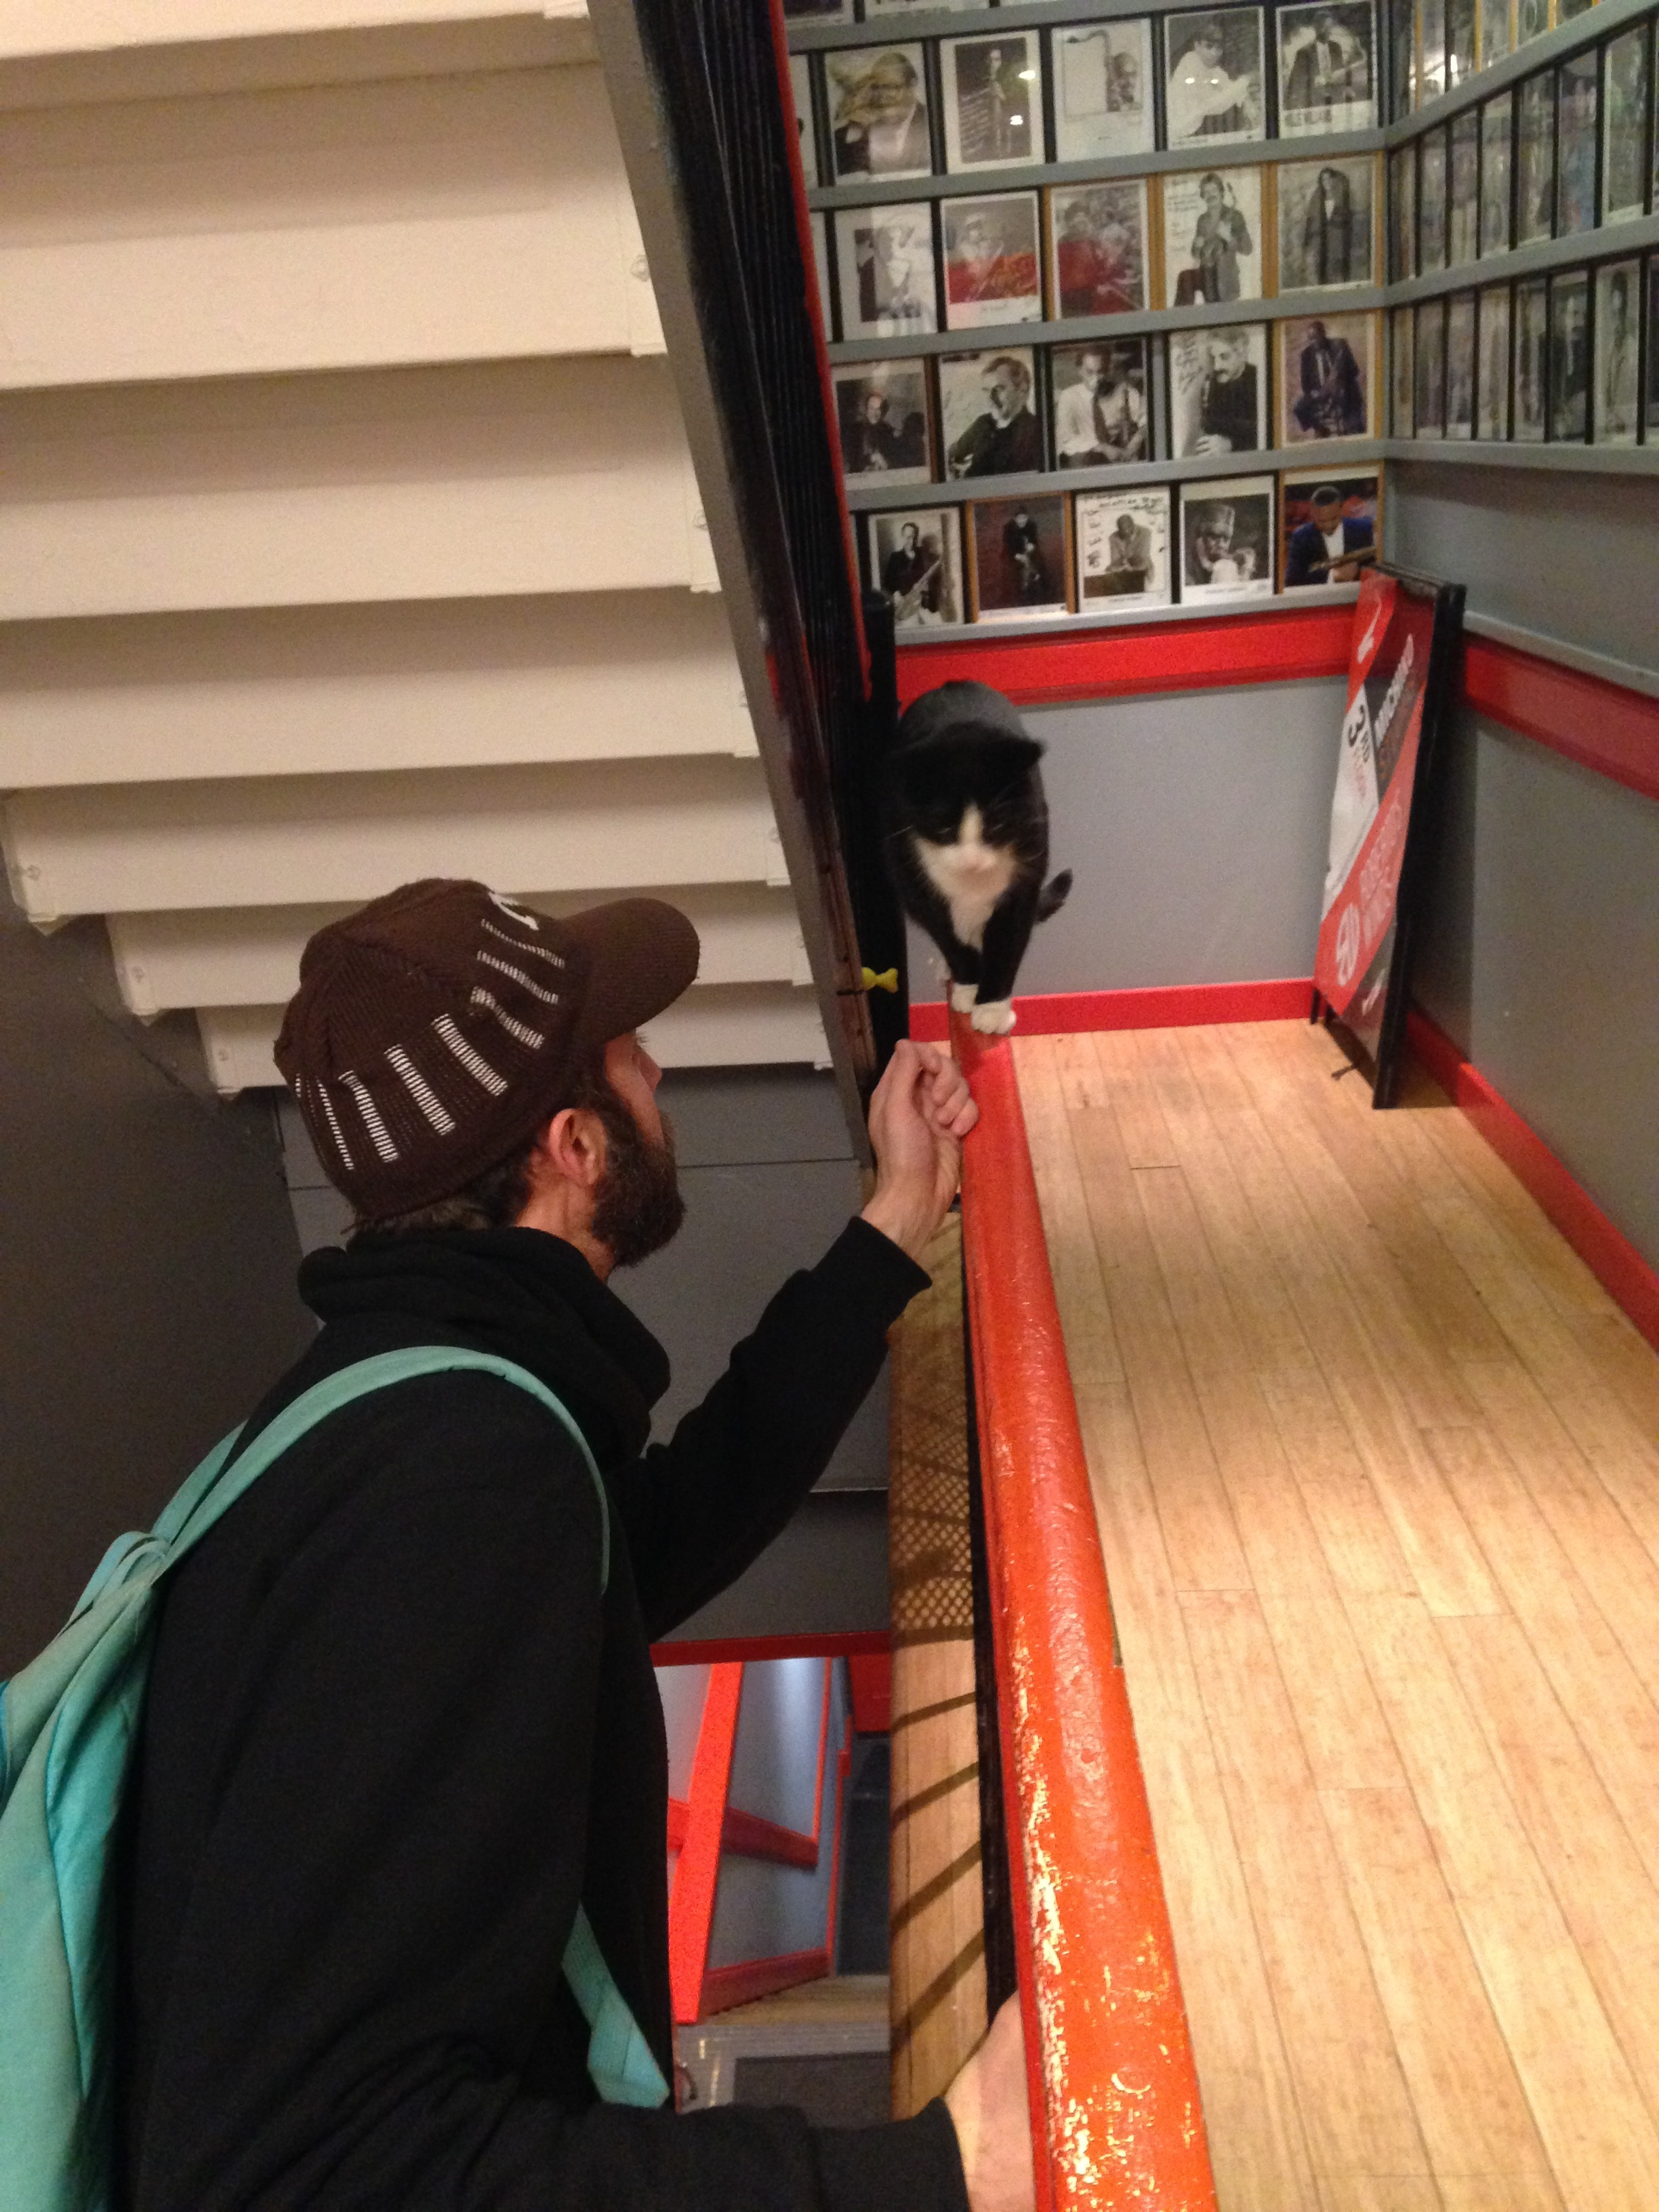 Special shout-out to Owen, who religiously reads our blog! Here he is trying to knock the Michiko Studios' cat off its balance beam.